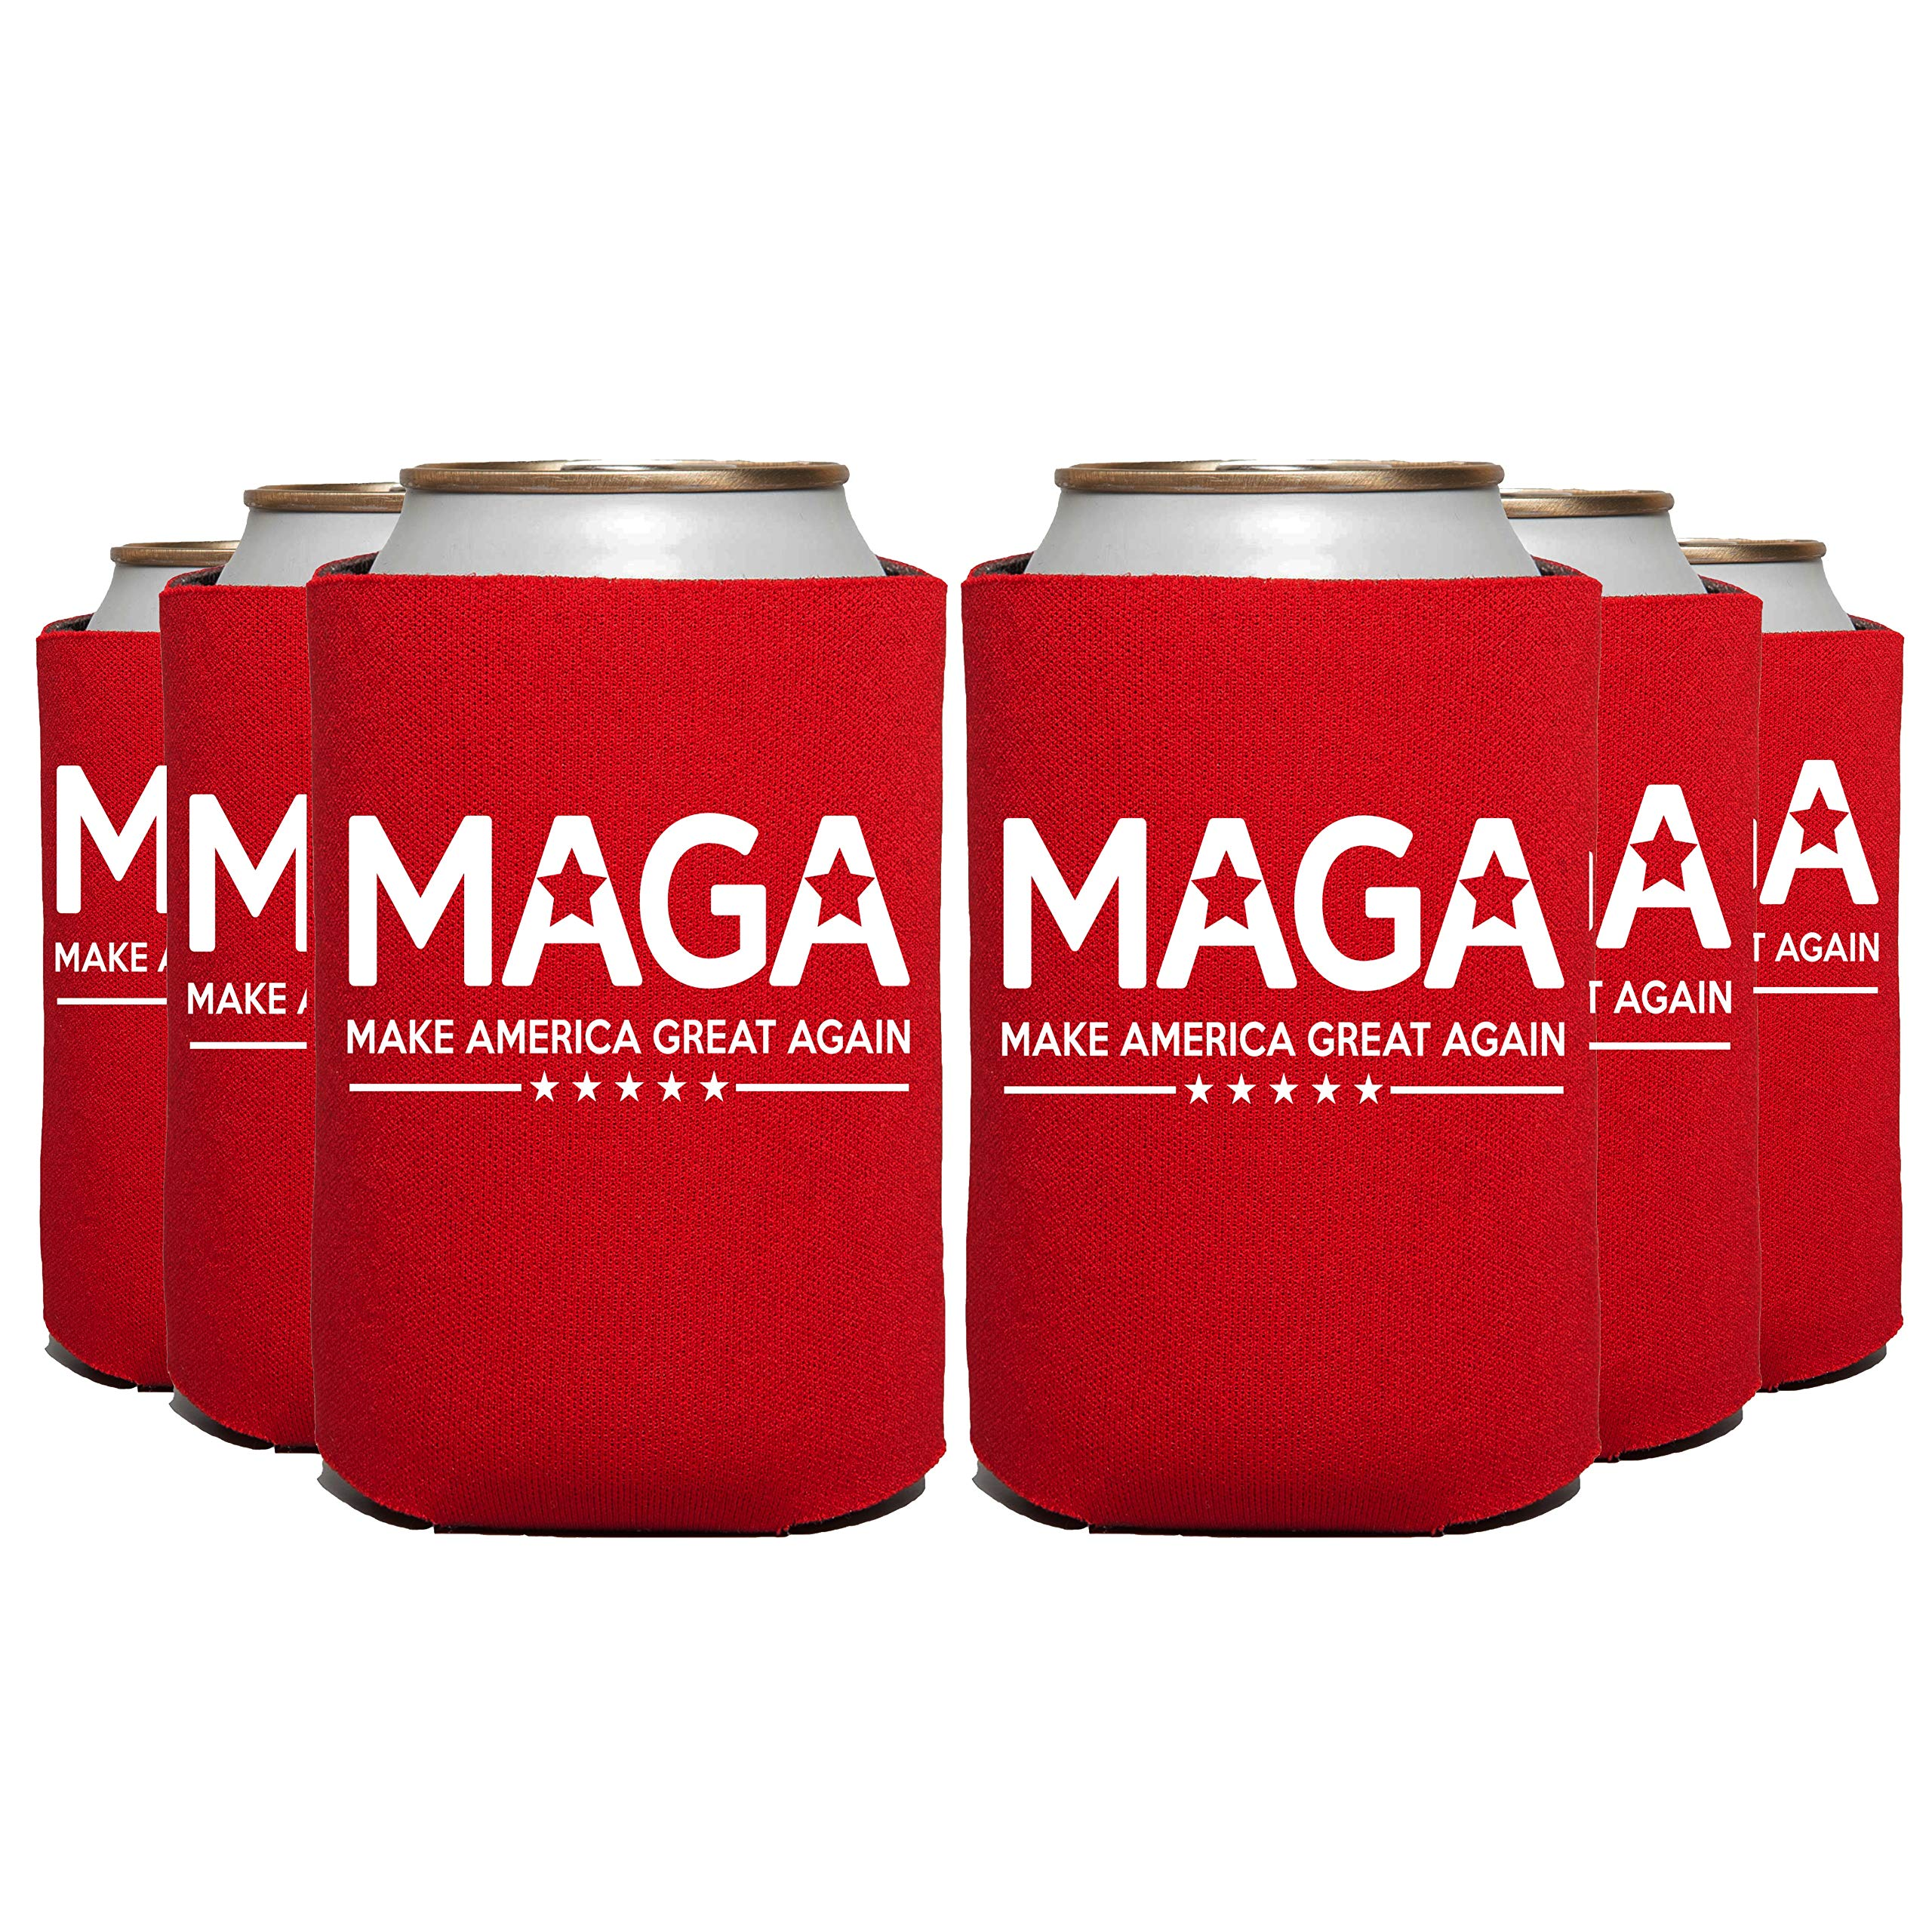 ELEPHIELD Make America Great Again Trump 2020 Can Cooler, 48 Pc, Red by Elephield